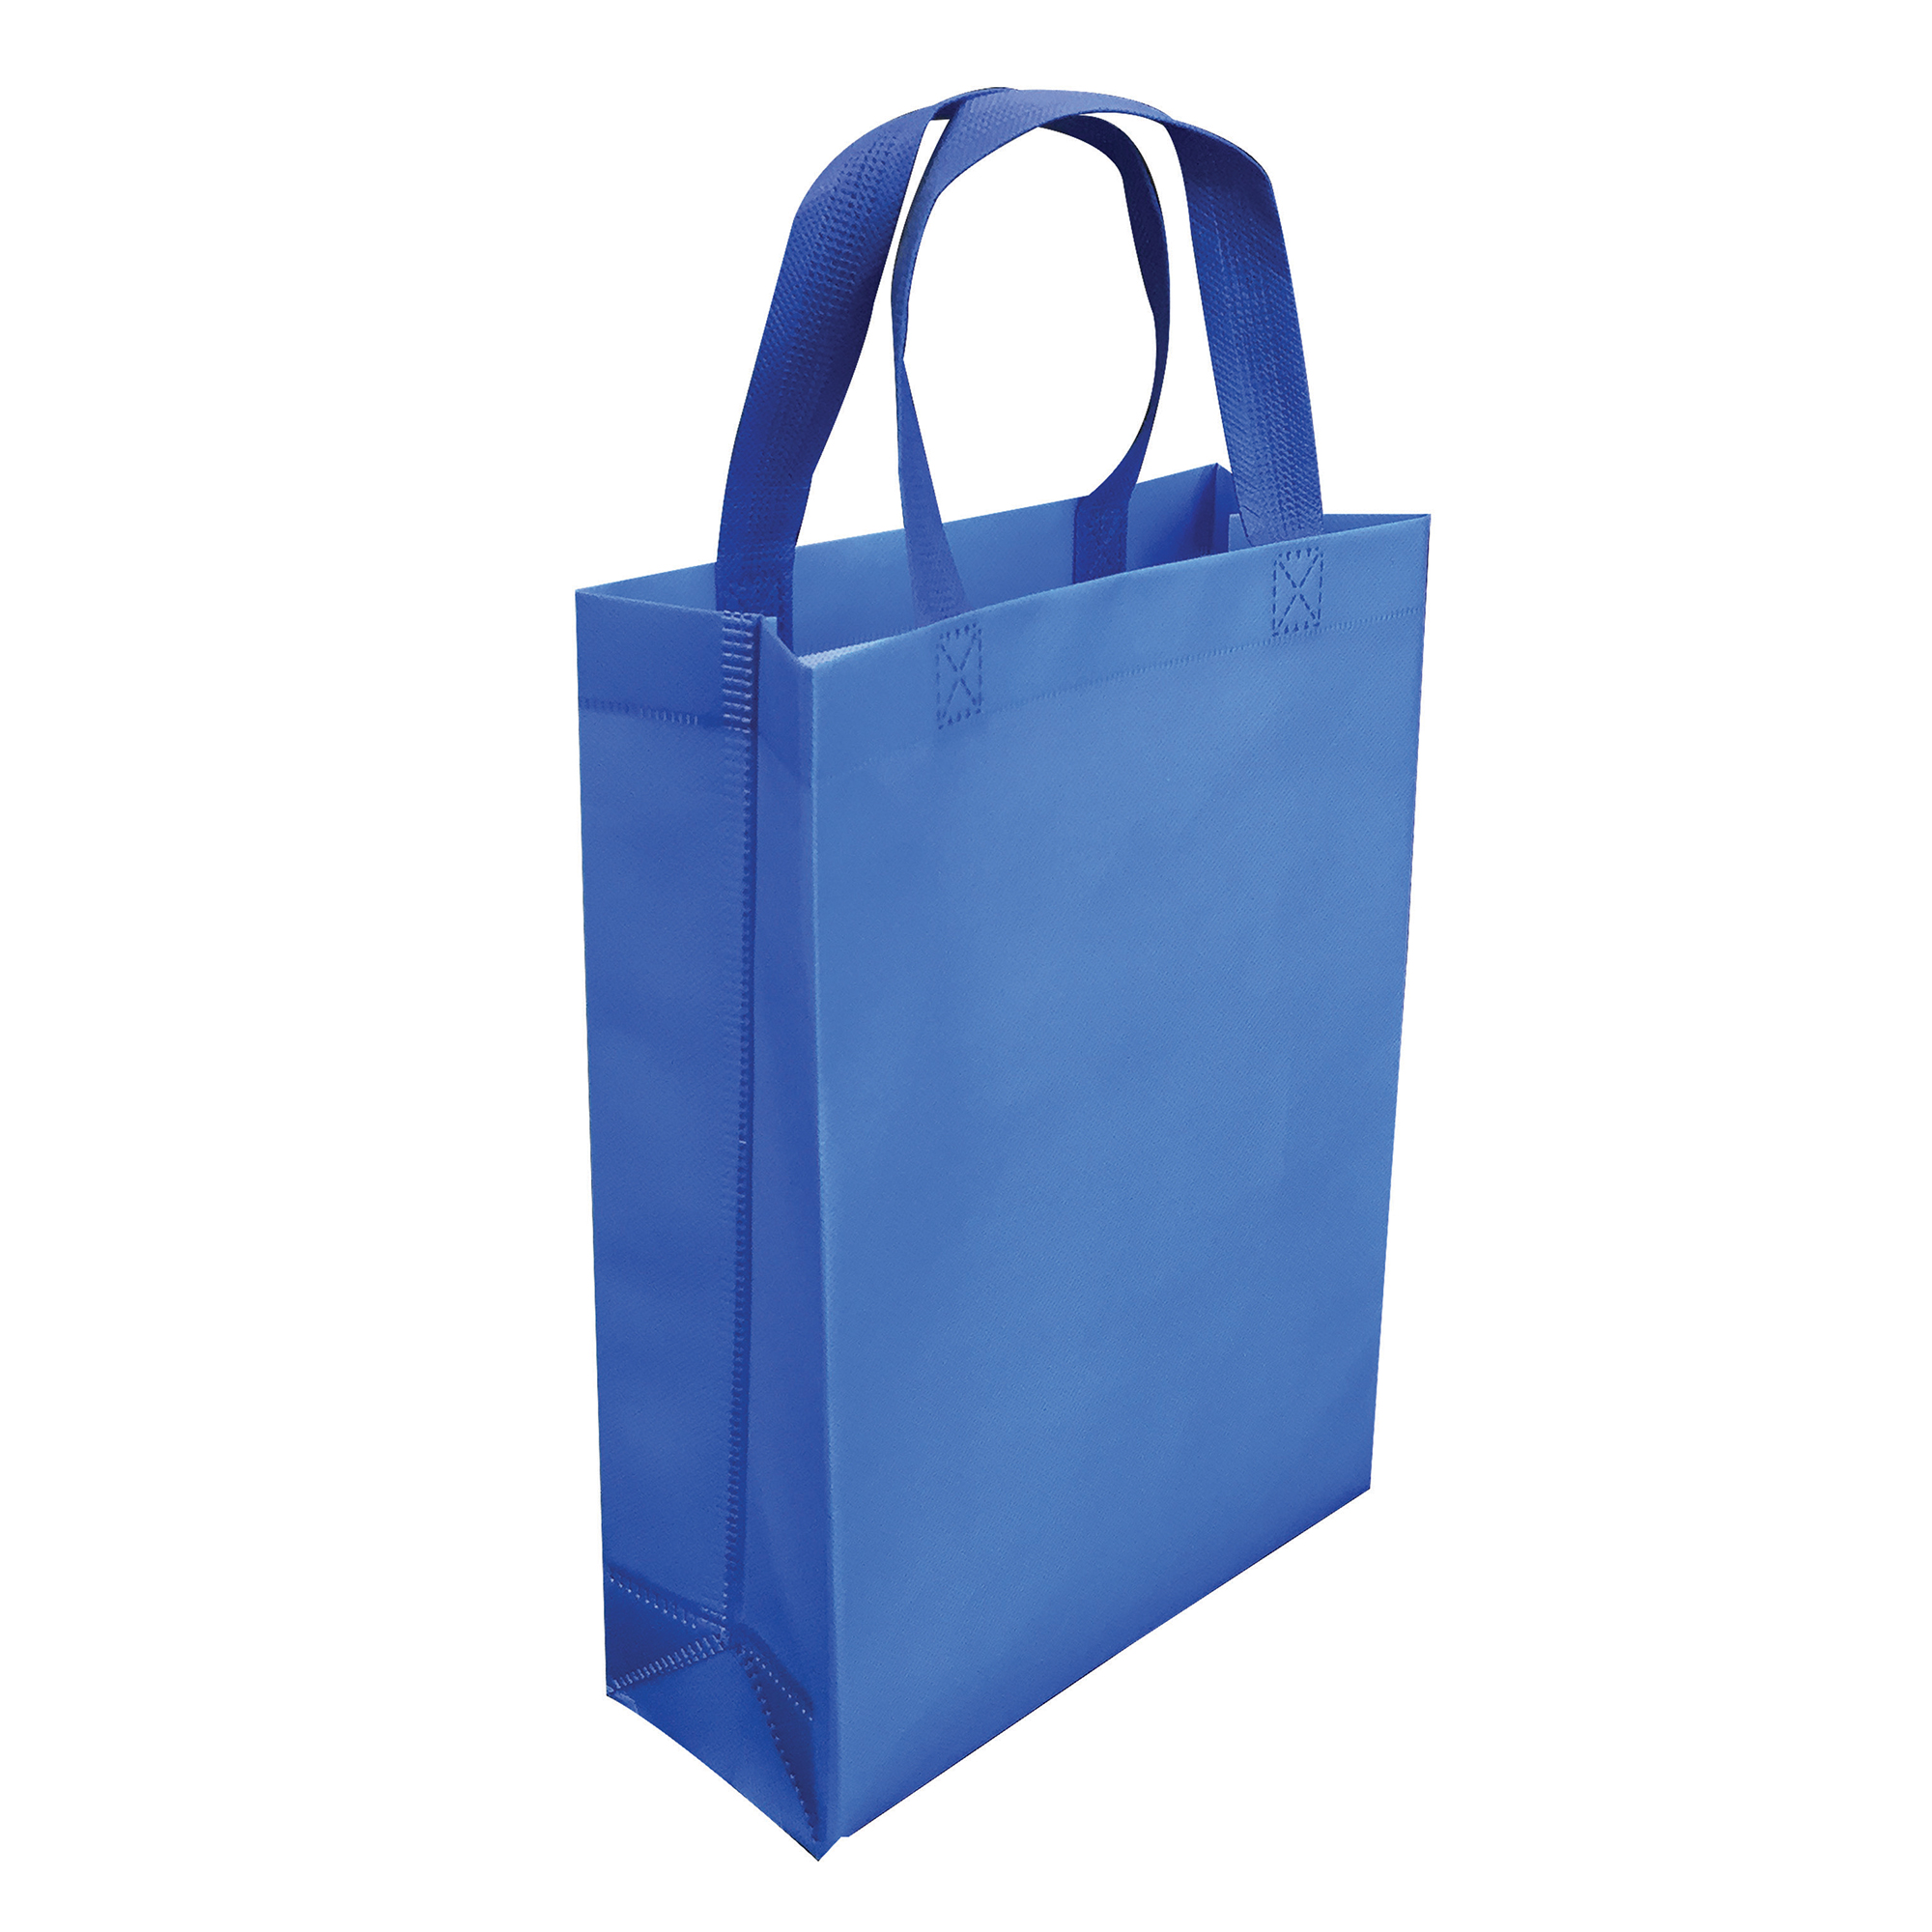 LAMINATED NON WOVEN TRADE SHOW BAG - 1 Colour Print, From $1.23